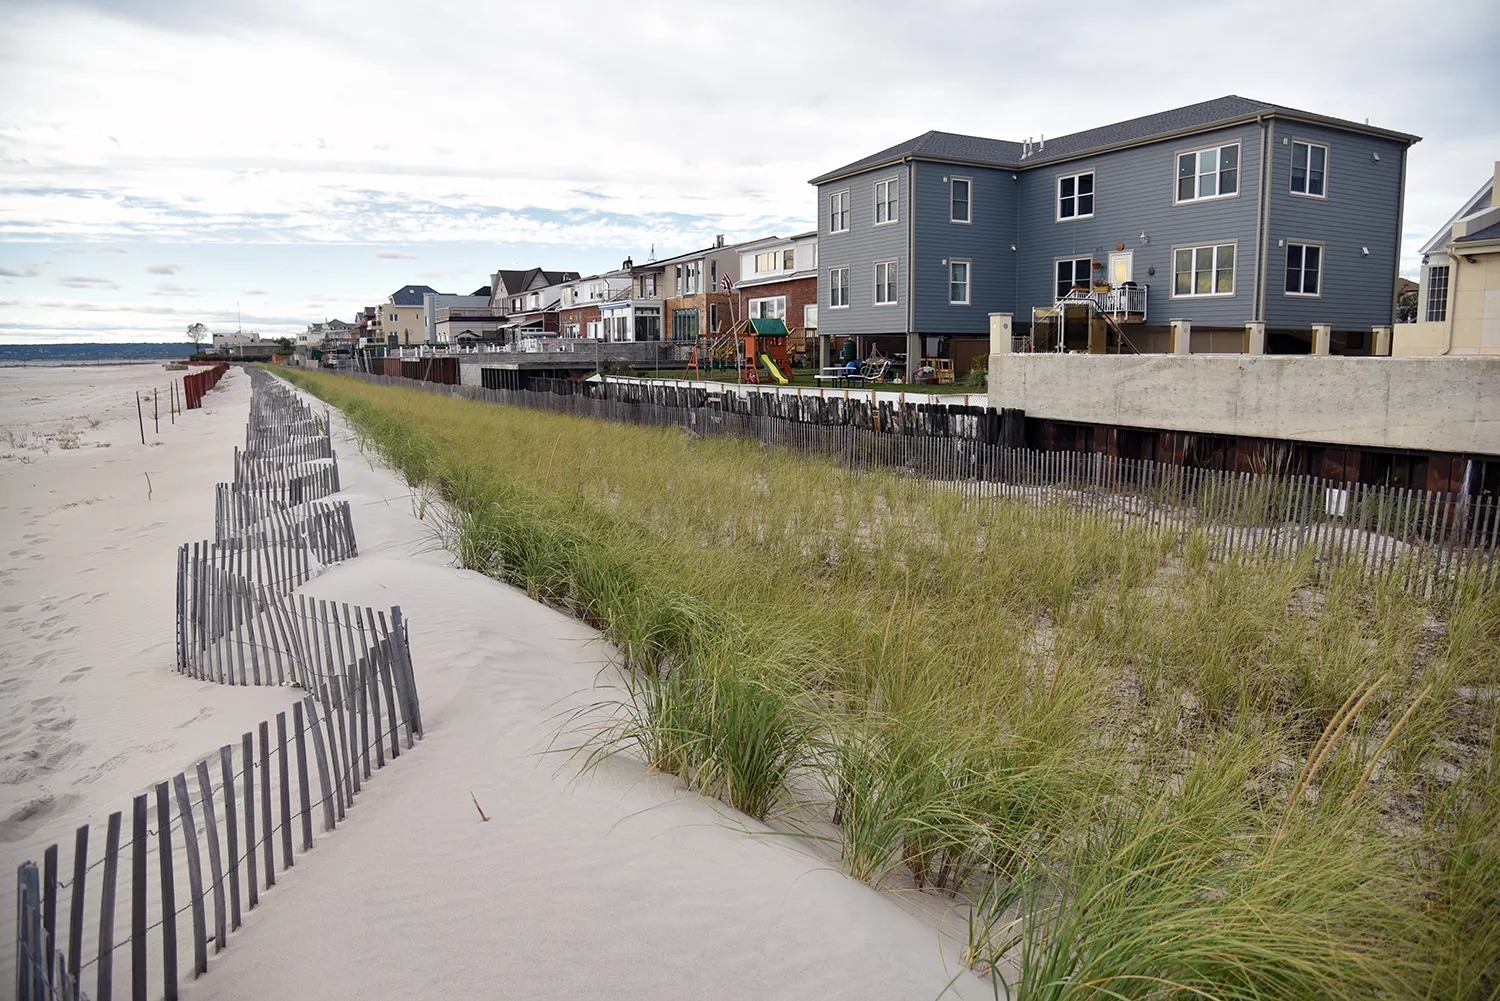 Billions for NYC Sandy recovery has gone unspent, says comptroller report